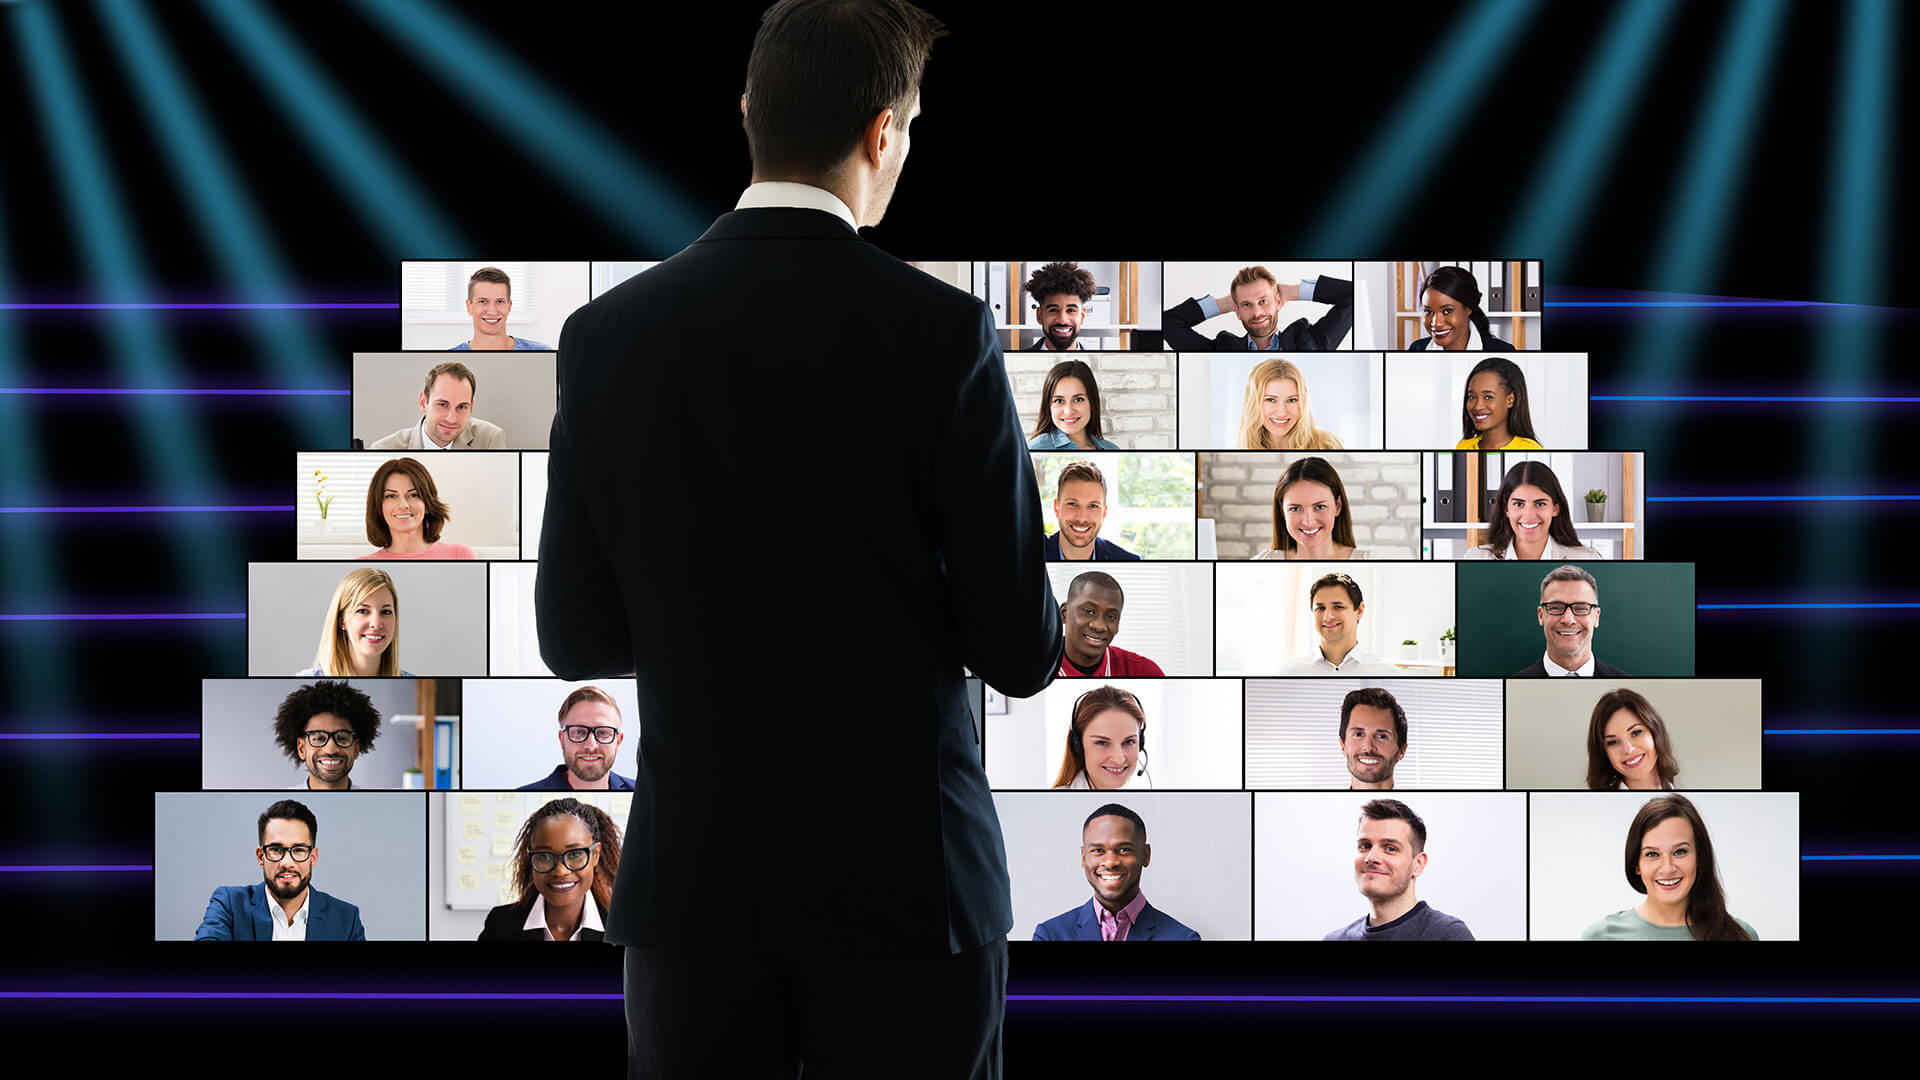 A conceptual image of a presenter speaking in front of a virtual audience.